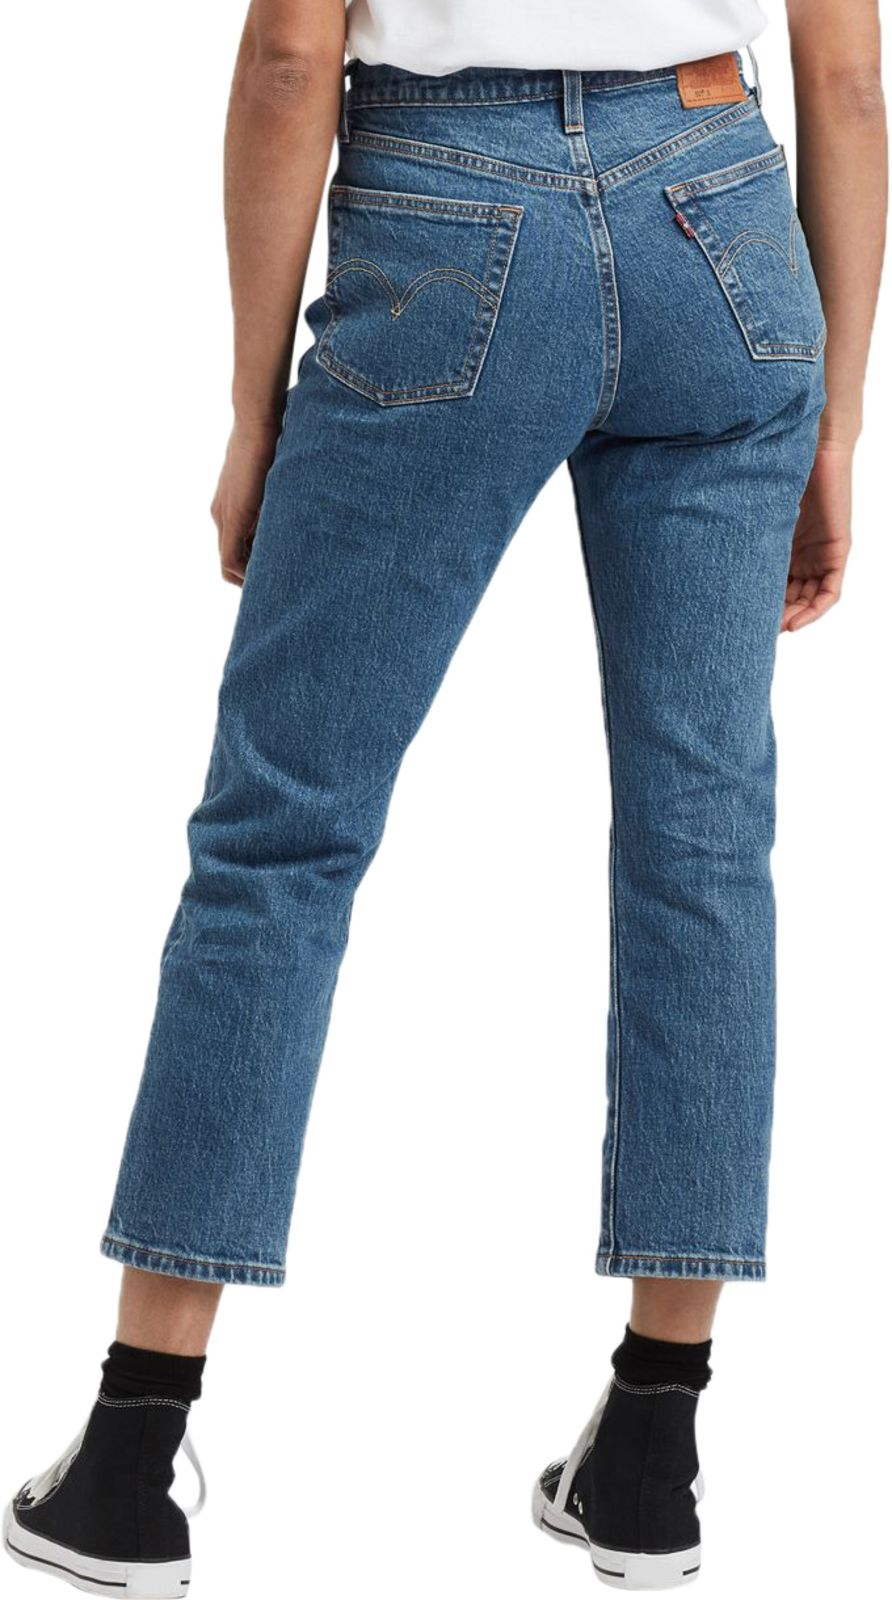 Levi's Women's 501 Original Crop Denim Jeans Jive Stonewash Blue